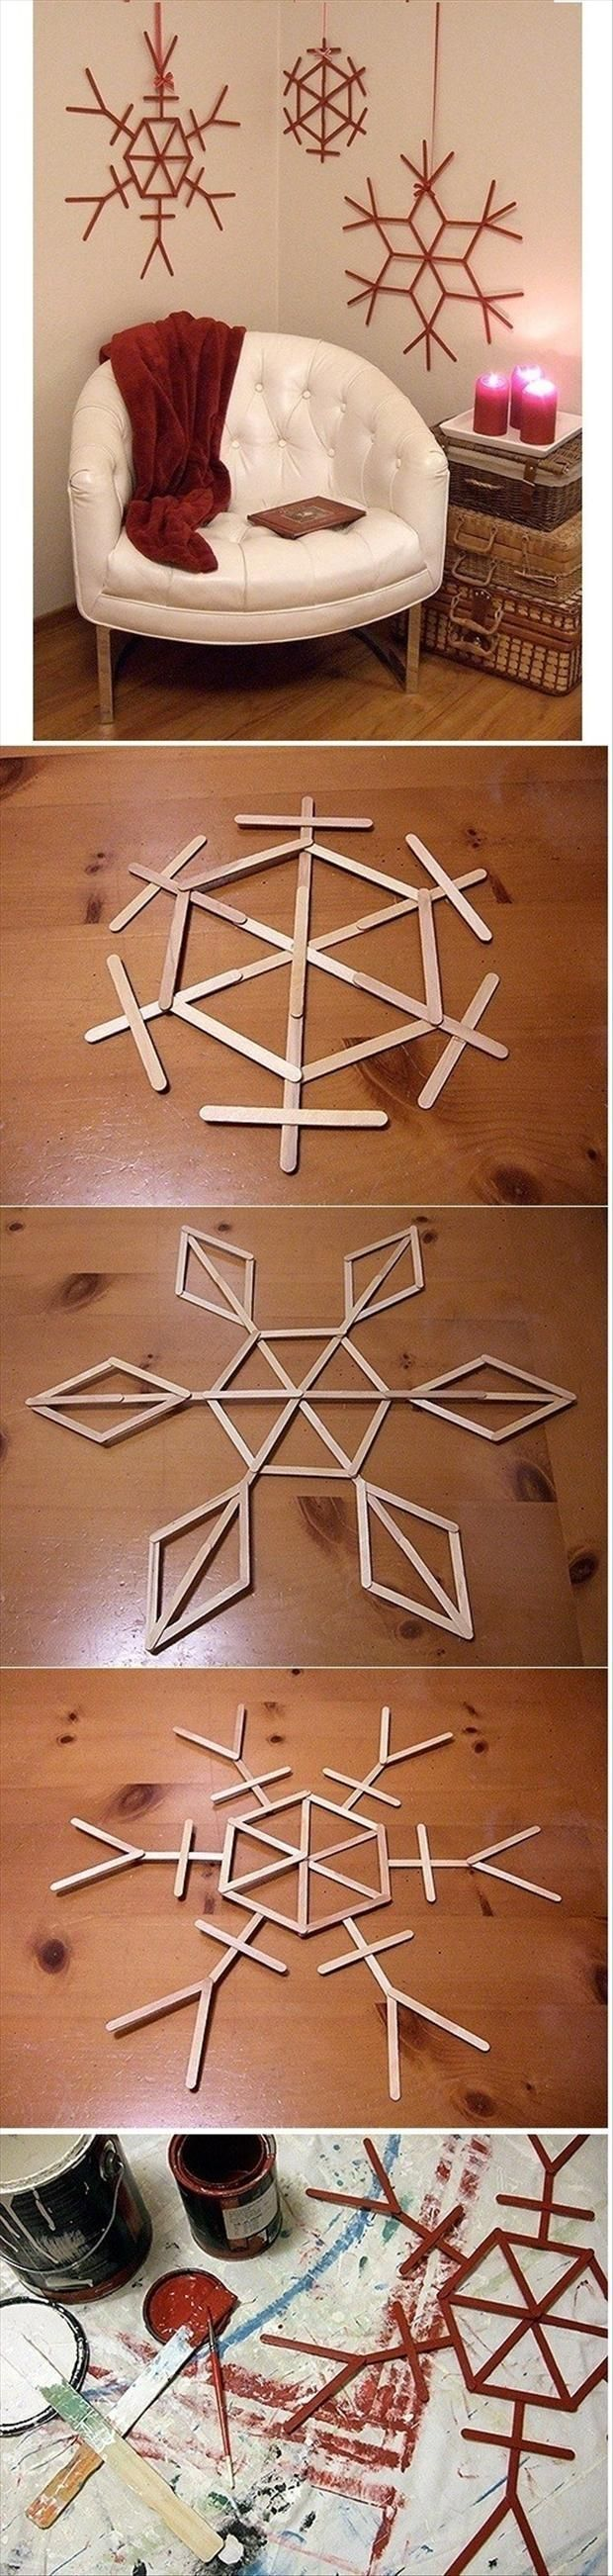 DIY scandi Snowflake Decor diy crafts christmas easy crafts